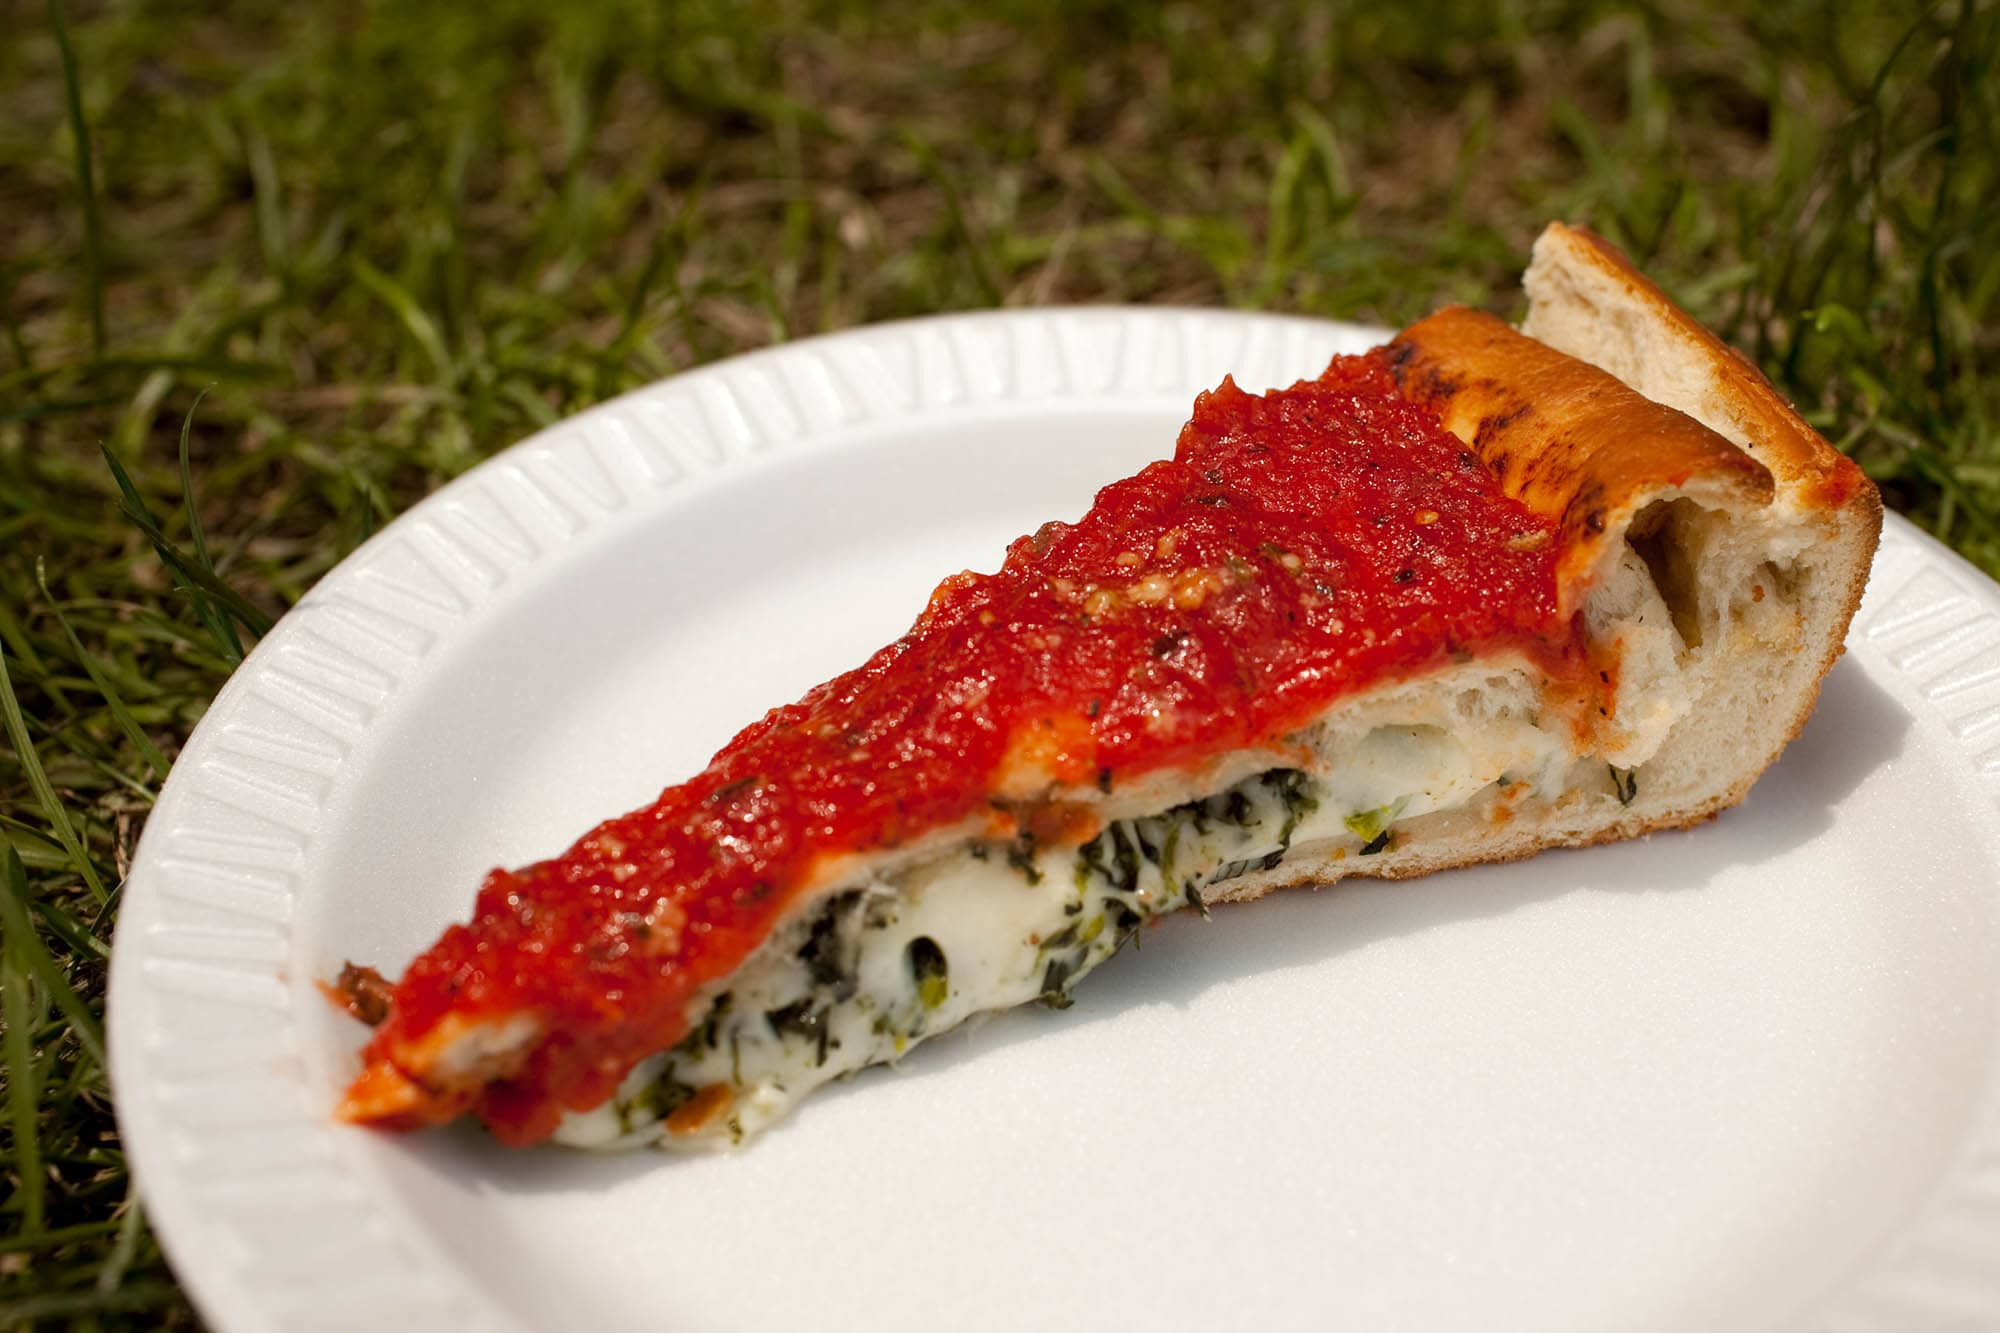 Spinach stuffed pizza at Taste of Chicago